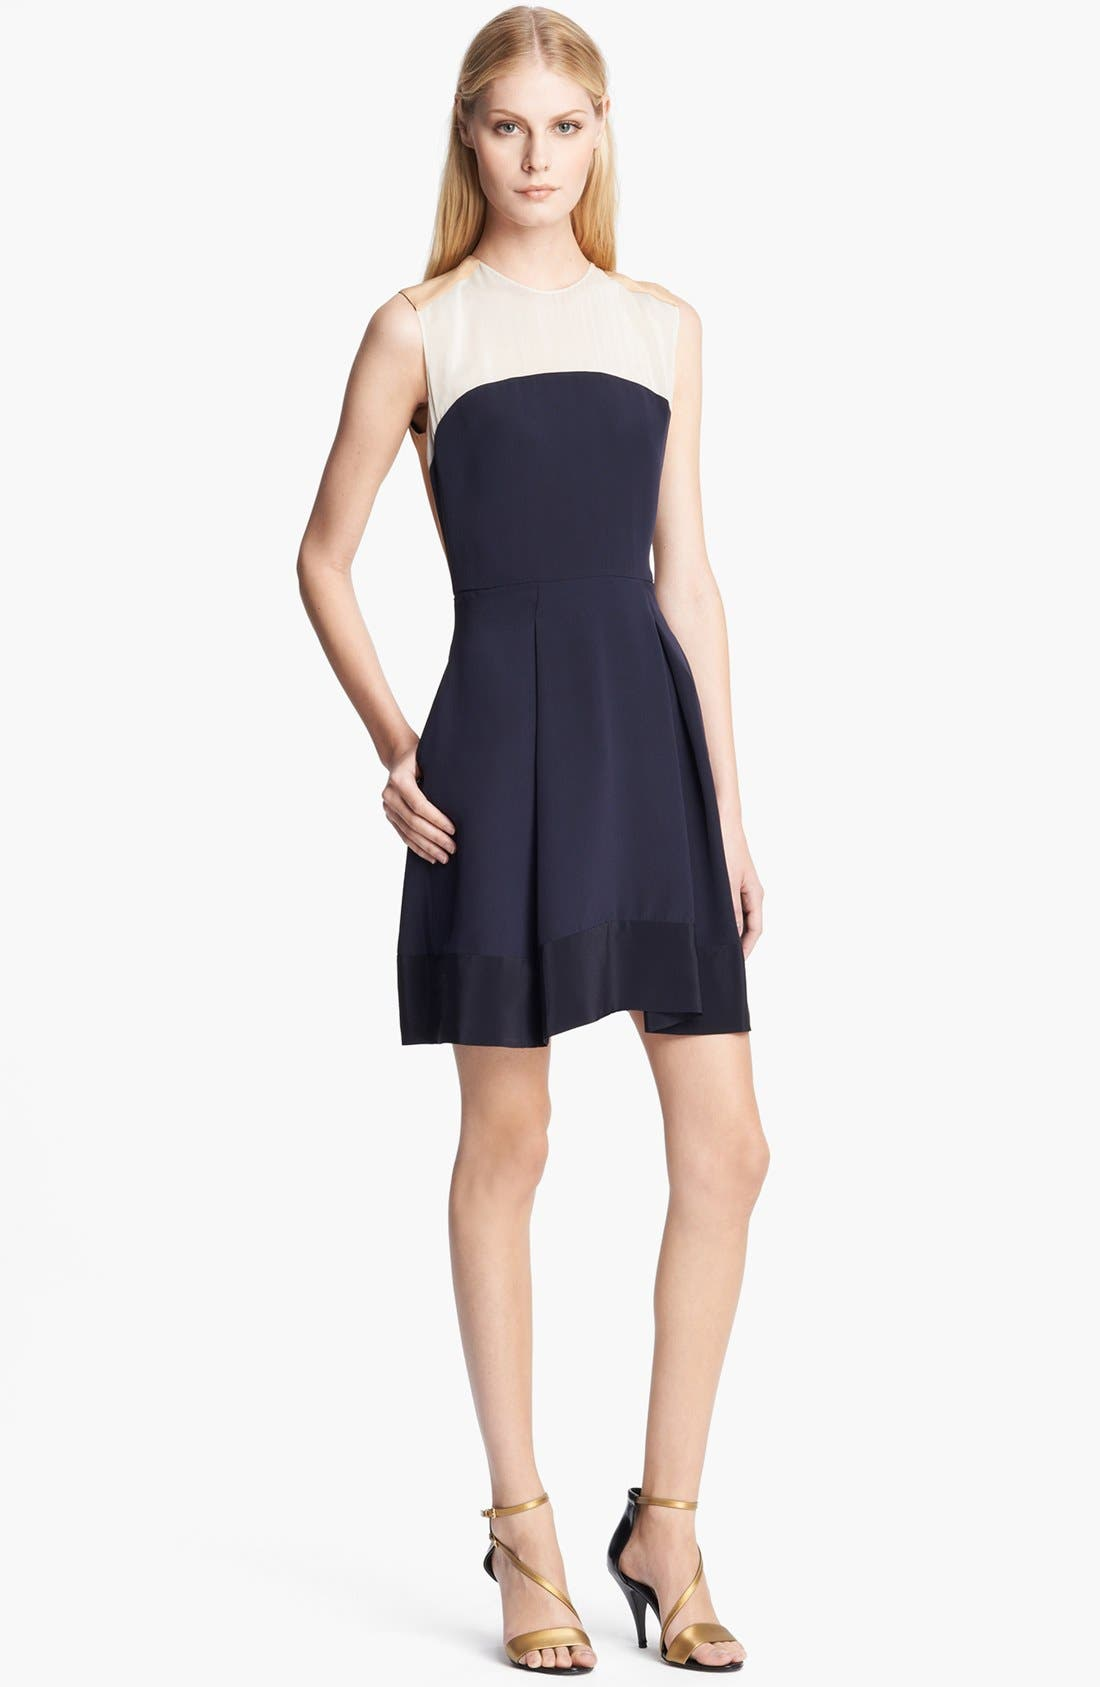 Alternate Image 1 Selected - 3.1 Phillip Lim Contrast Chiffon Yoke Silk Dress